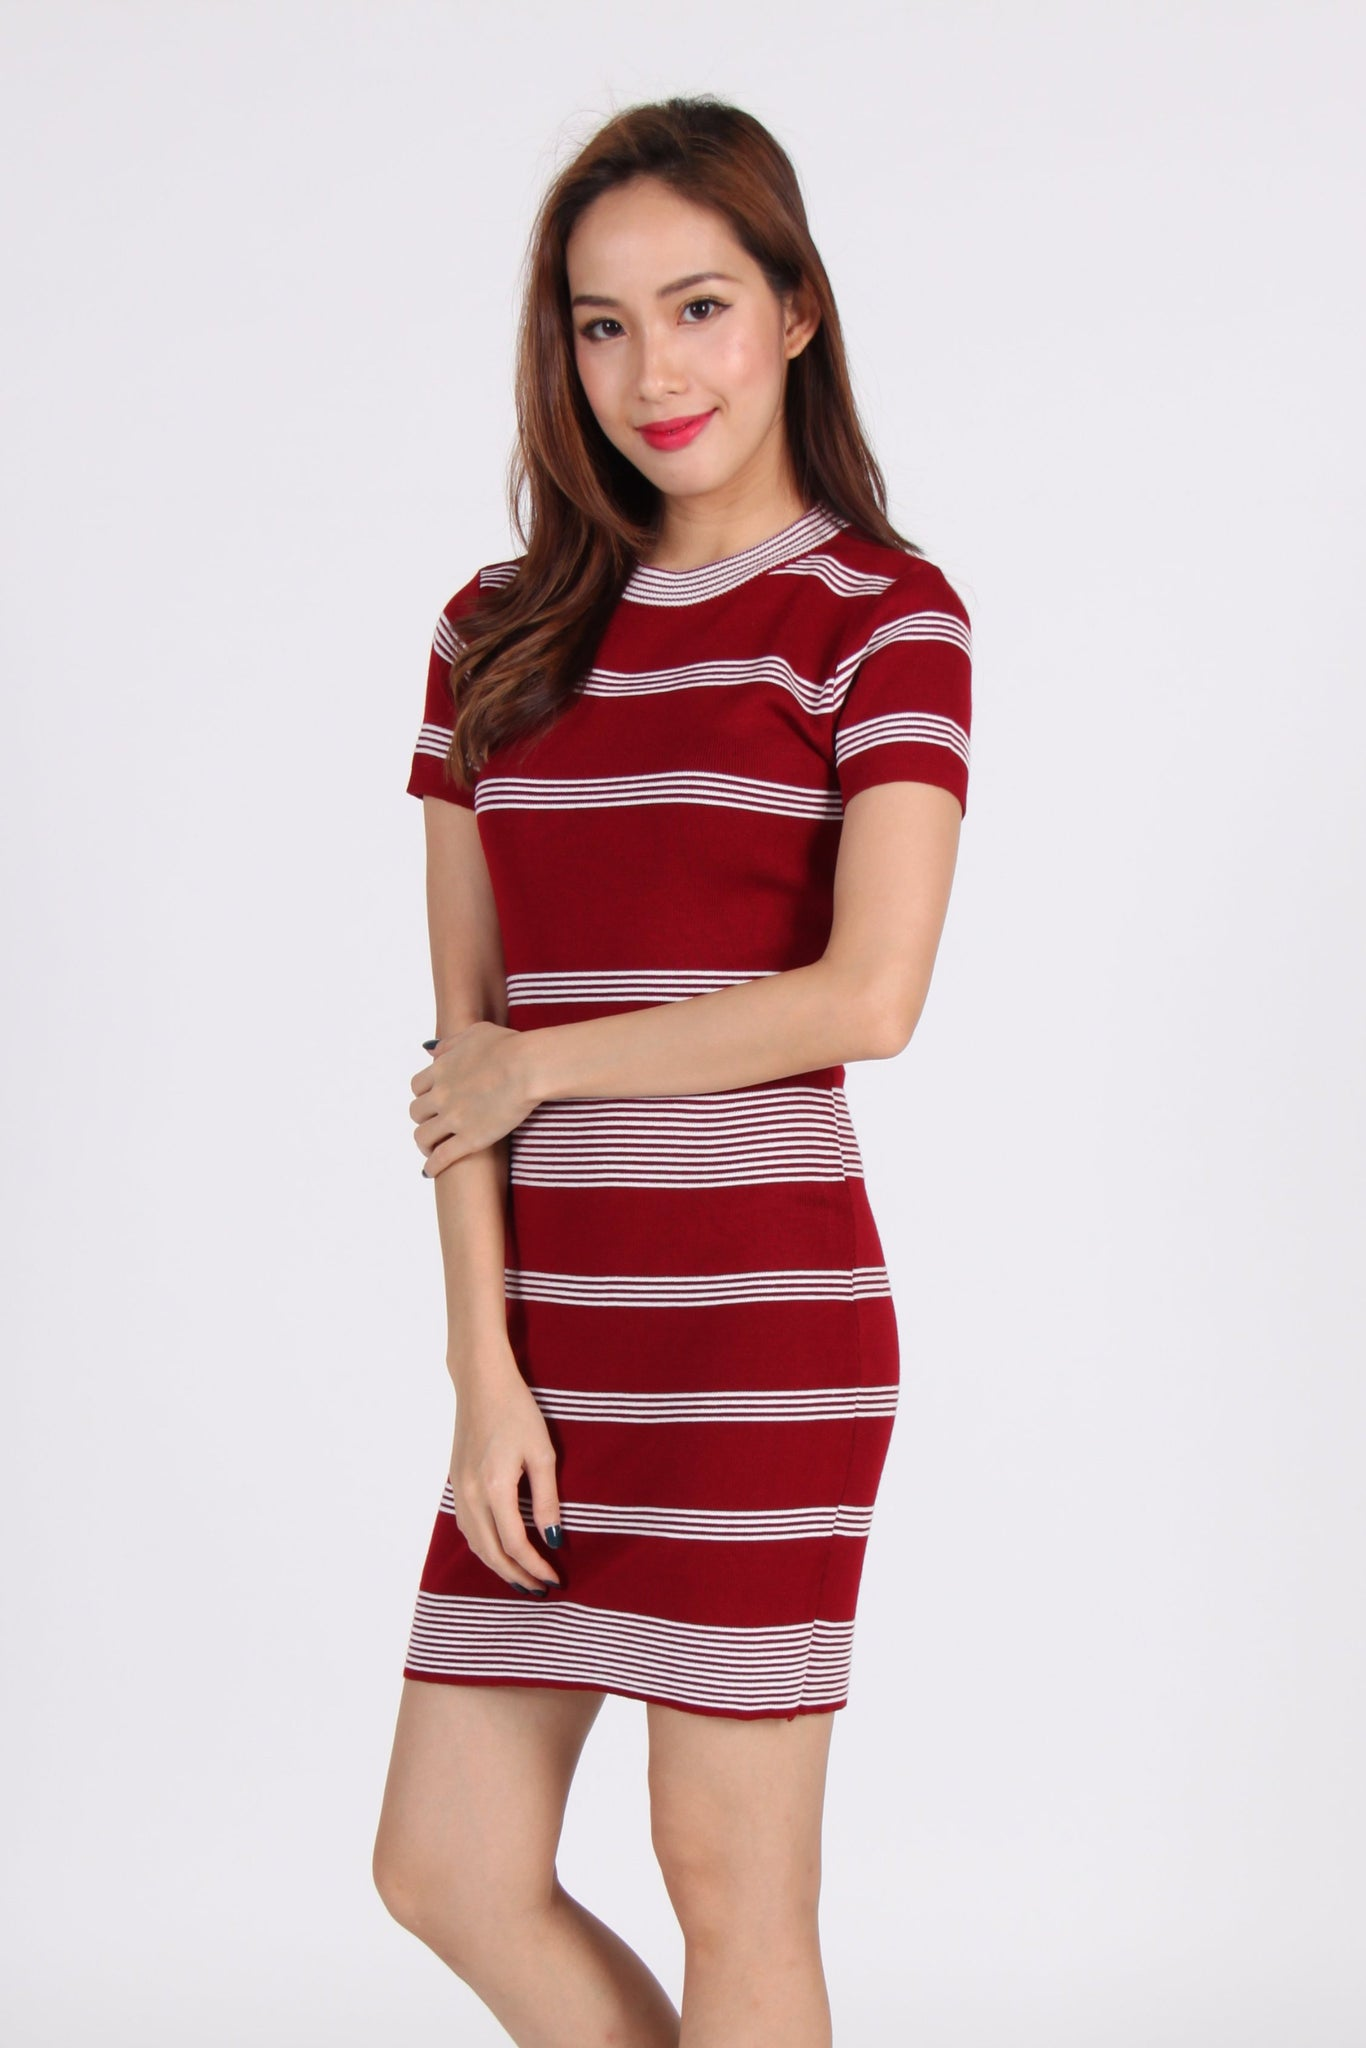 Sleeve Stripes Contrast Bodycon Dress in Maroon